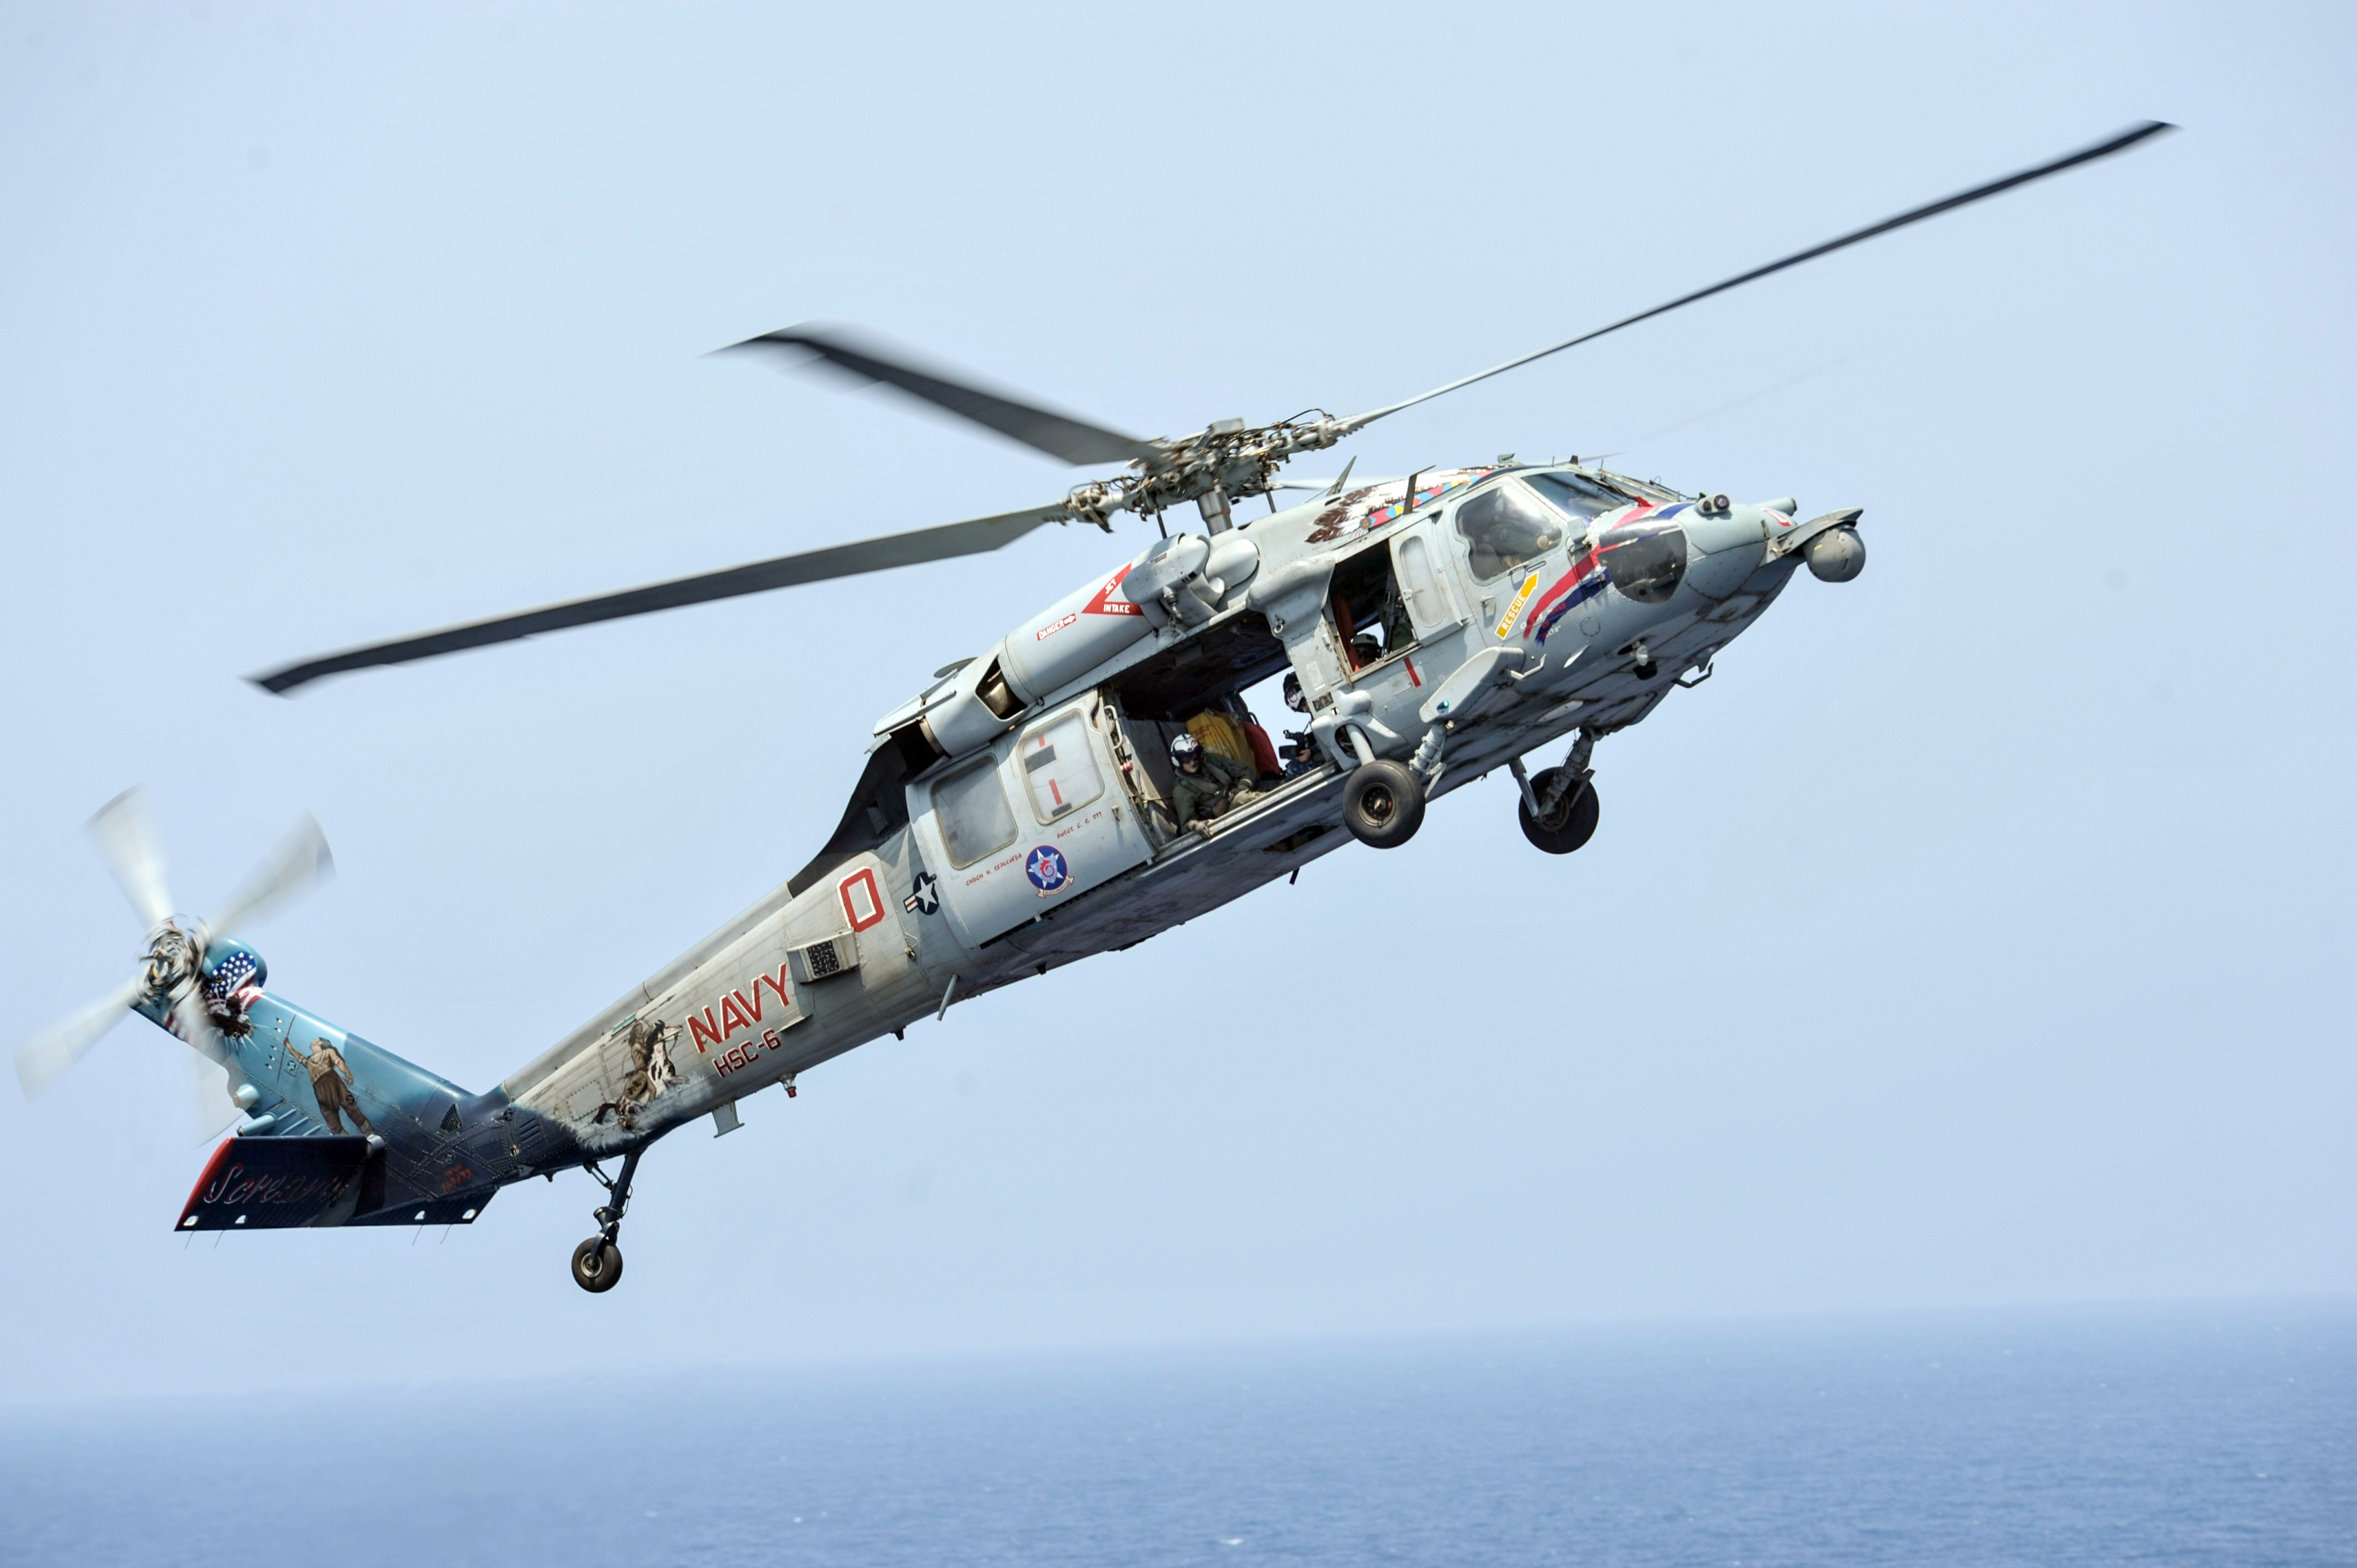 This September 7, 2013 handout image provided by the US Navy shows an MH-60S Sea Hawk helicopter assigned to the Indians of Helicopter Sea Combat Squadron (HSC) 6 preparing to land on the flight deck of the aircraft carrier USS Nimitz (CVN 68). (AFP File Photo)